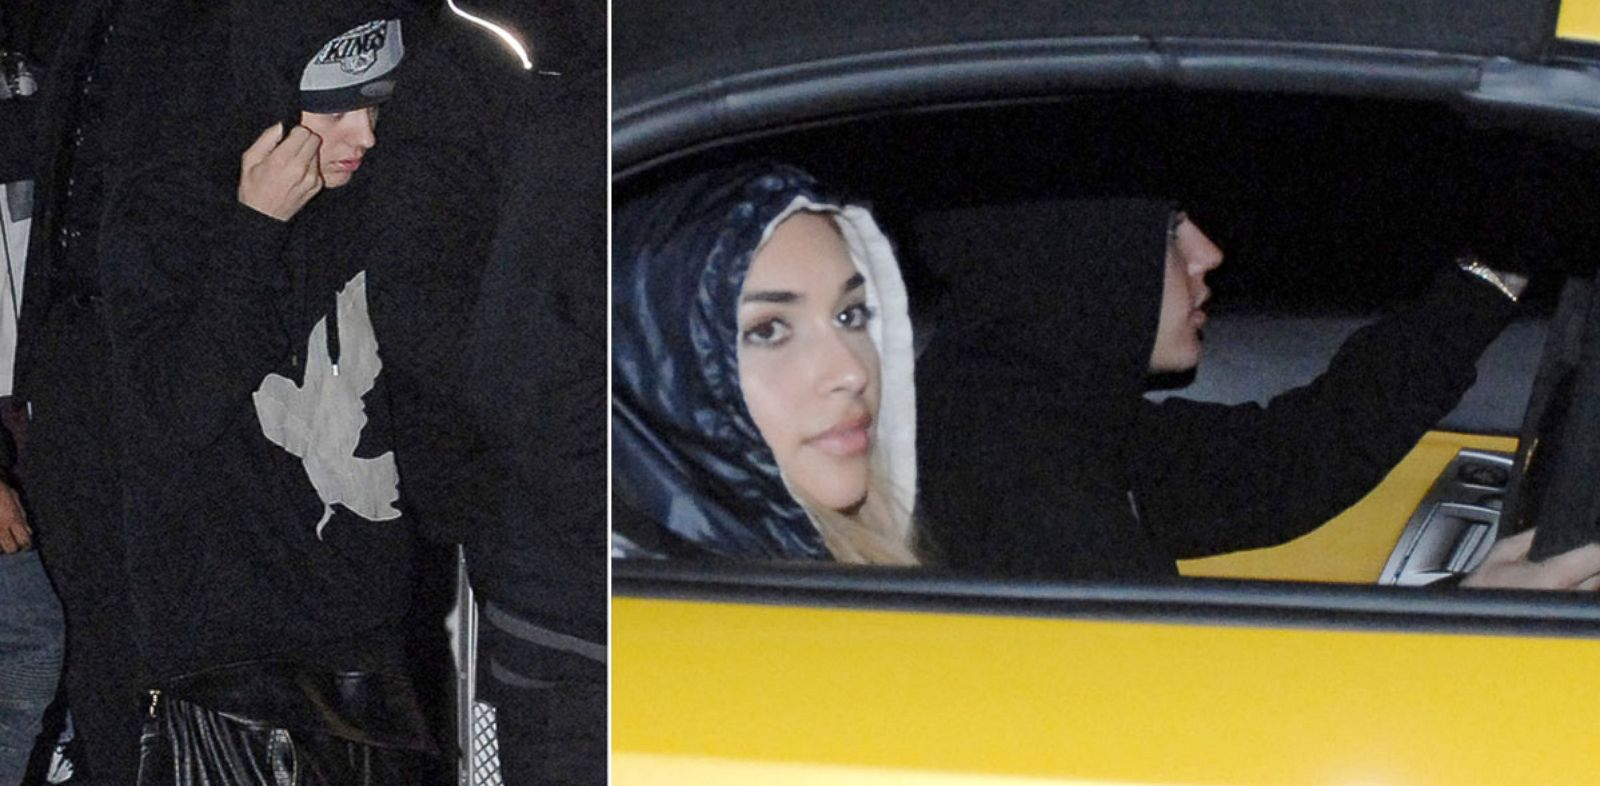 PHOTO: Left, Justin Bieber is seen leaving a Miami nightclub, and right, driving with a companion the night of his arrest, Jan. 23, 2014.